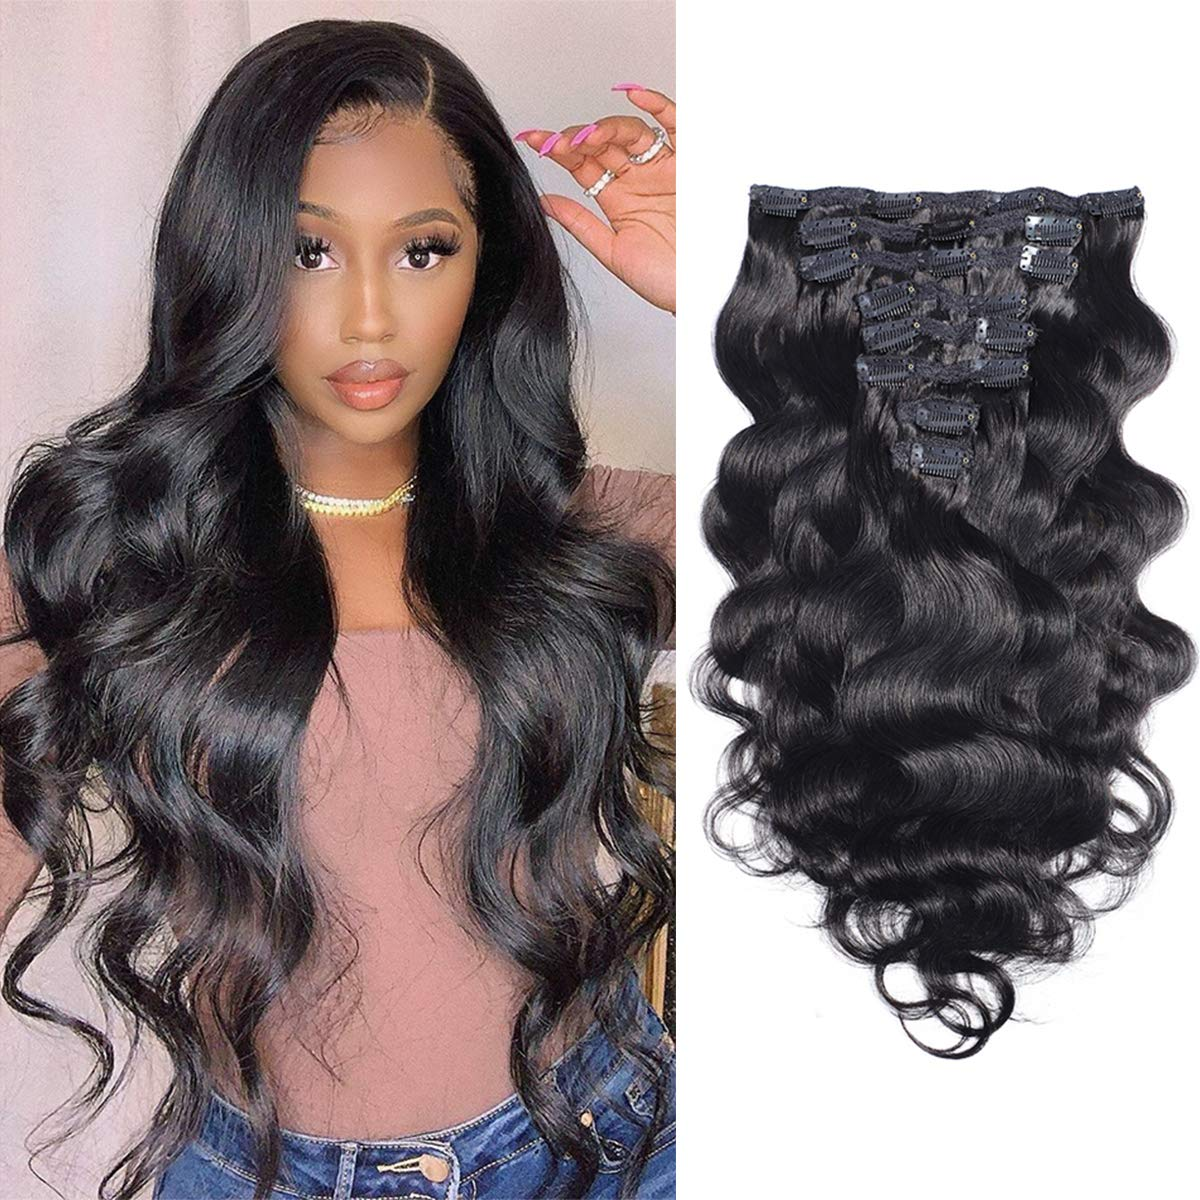 Clip in Hair Extensions Attention brand 100% Unprocessed Do Brazilian Price reduction Human